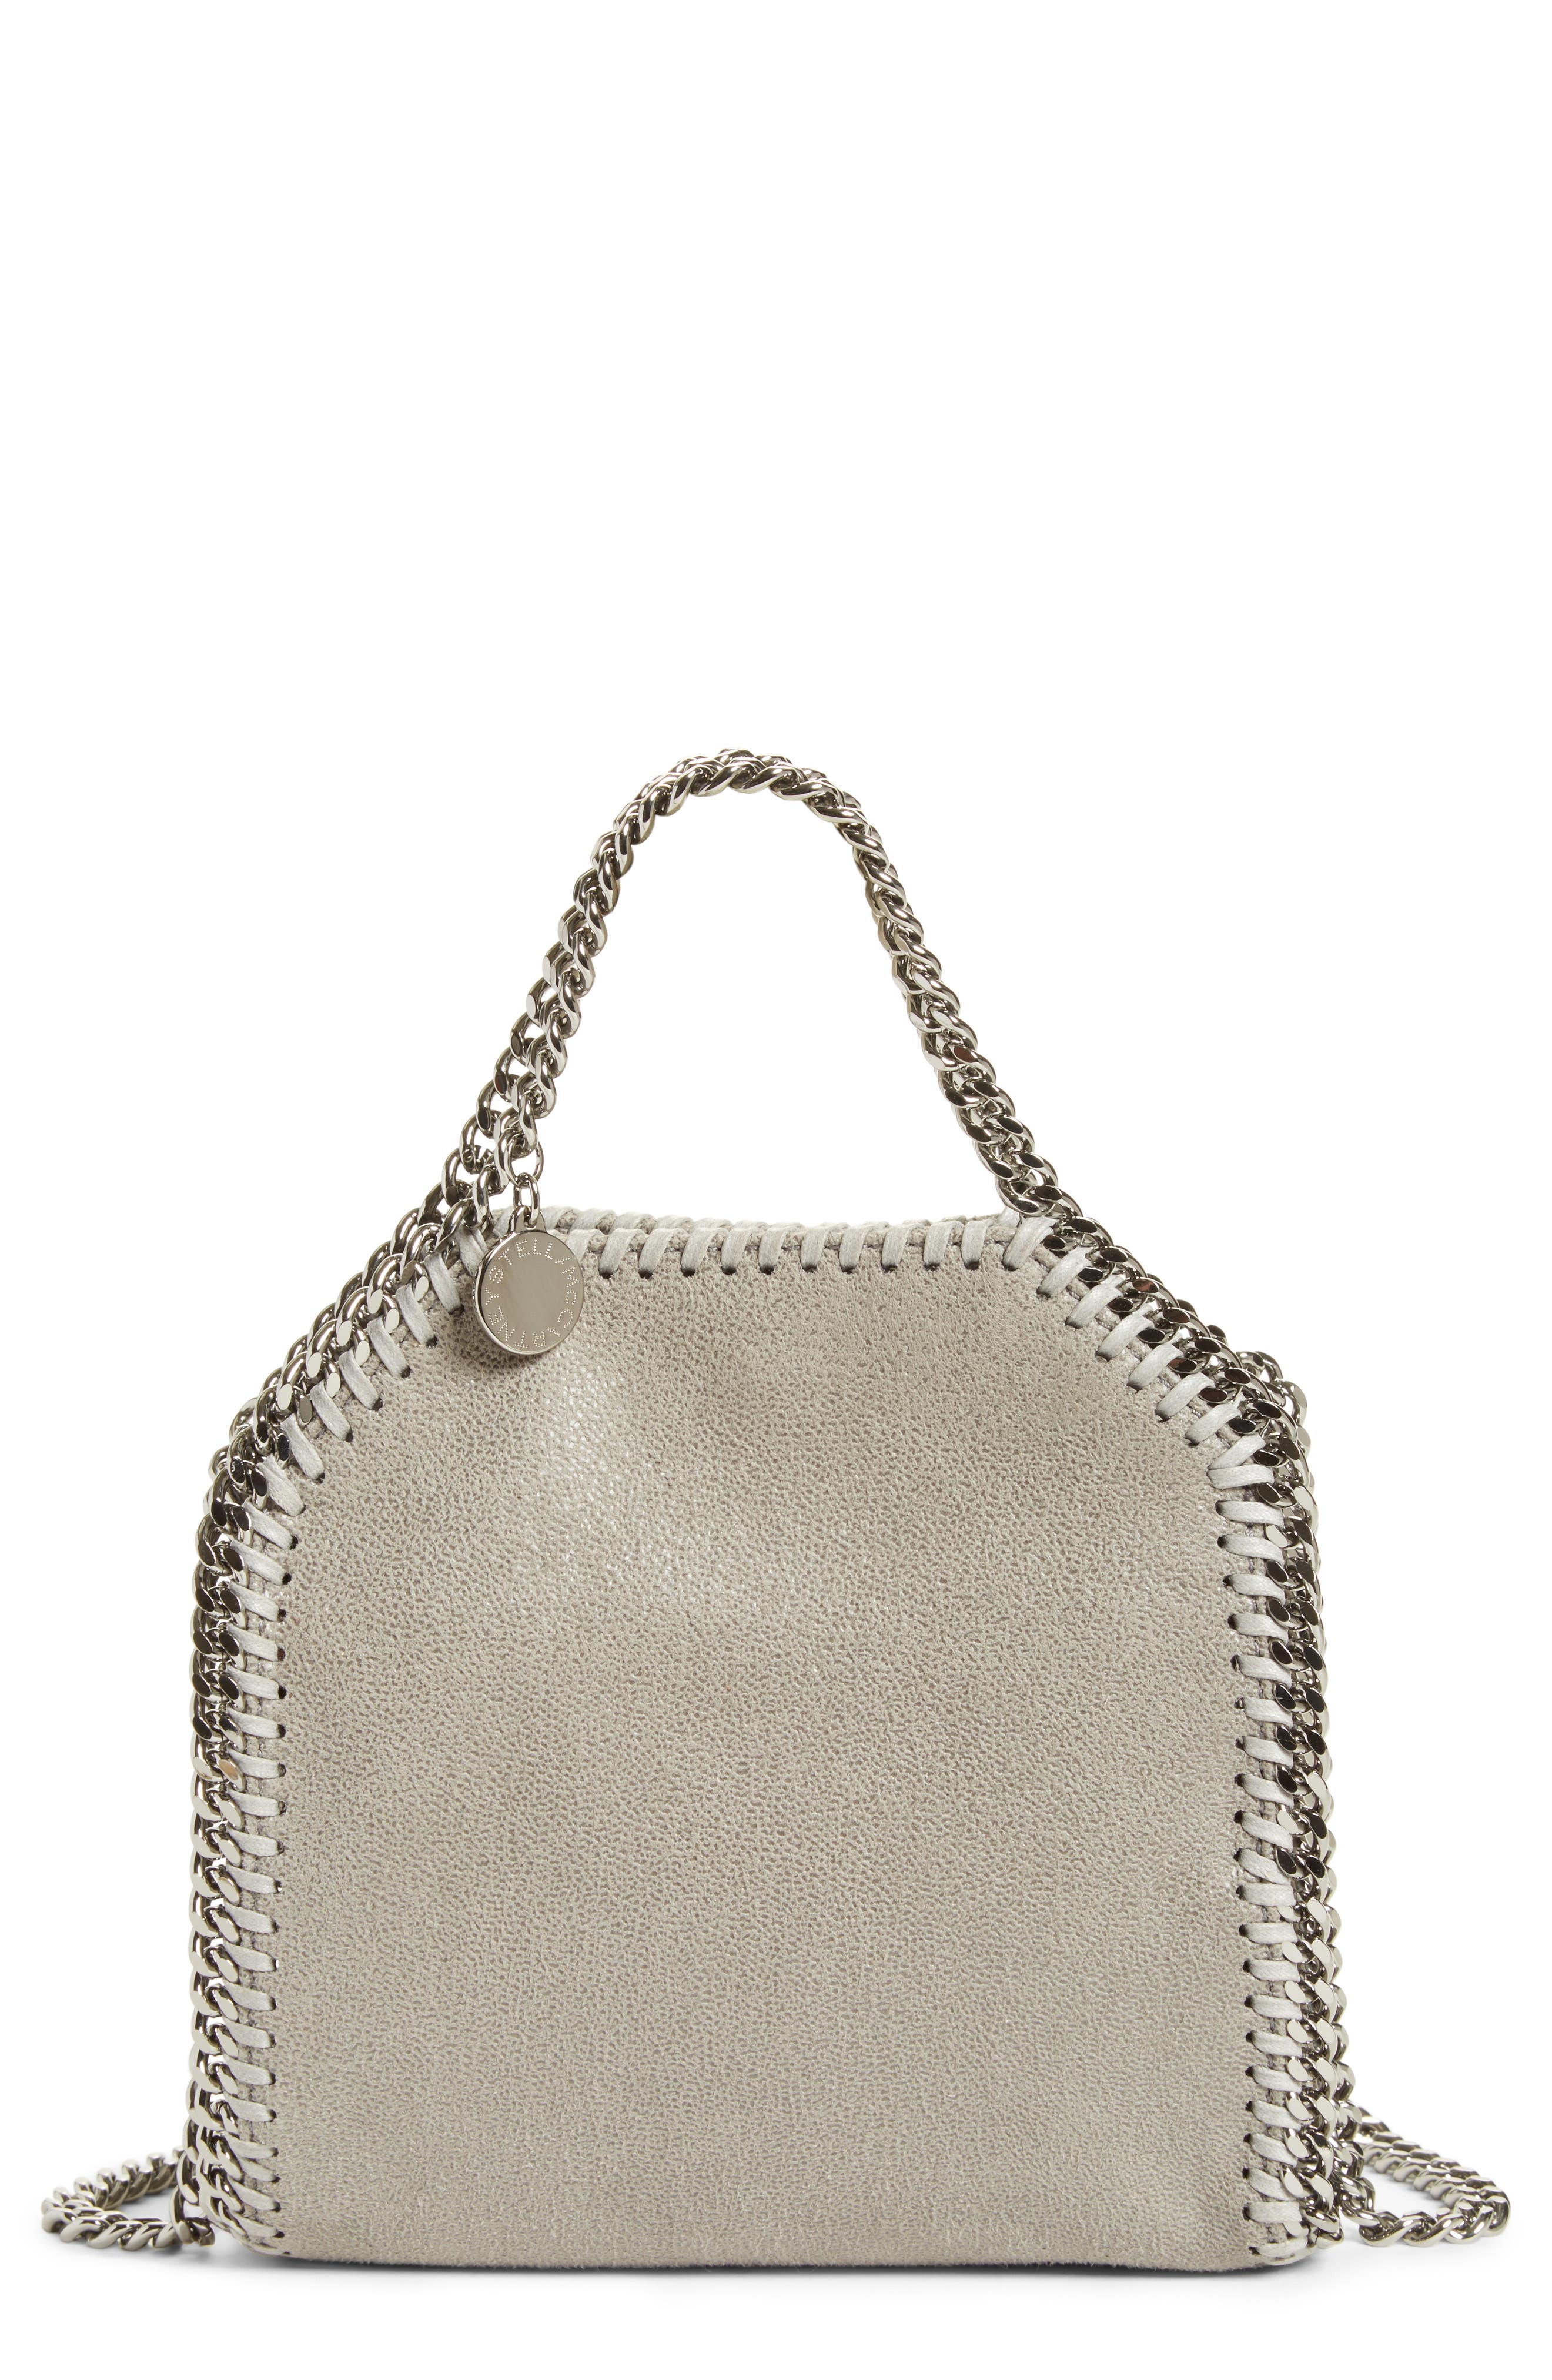 STELLA MCCARTNEY, 'Tiny Falabella' Faux Leather Crossbody Bag, Main thumbnail 1, color, 053